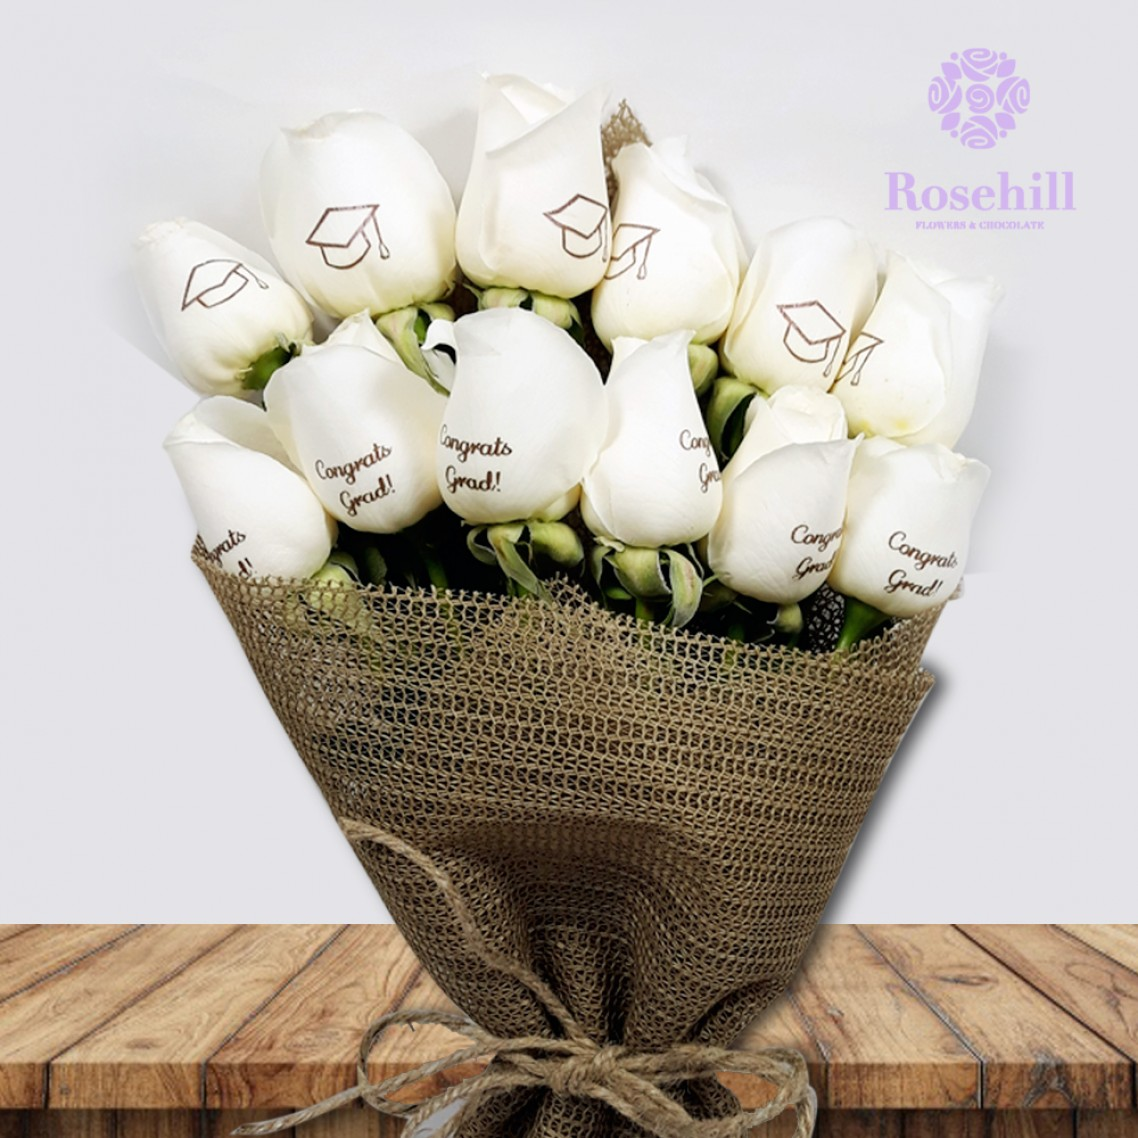 1524677166-h-250-Rosehill's Graduation Bouquet- White.jpg